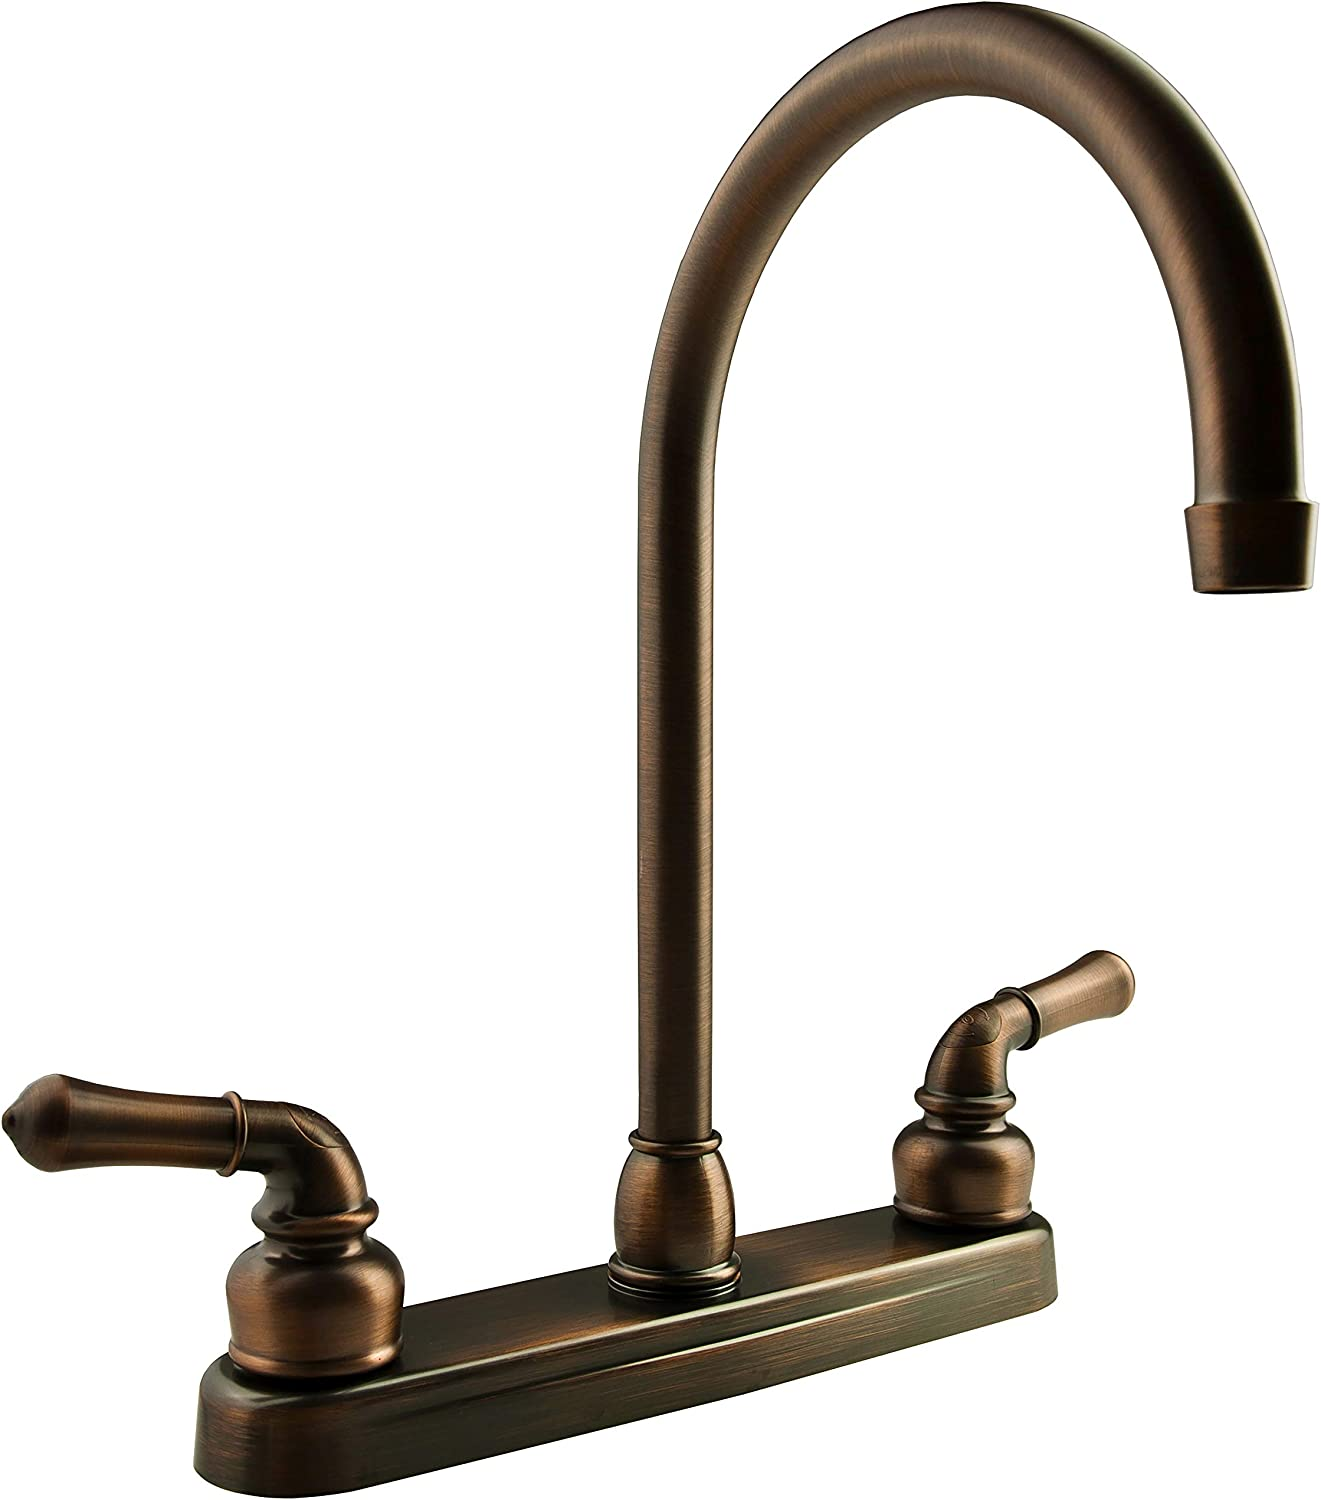 Dura Faucet DF-PK330HC-ORB RV J-Spout Kitchen Faucet Oil-Rubbed Bronze